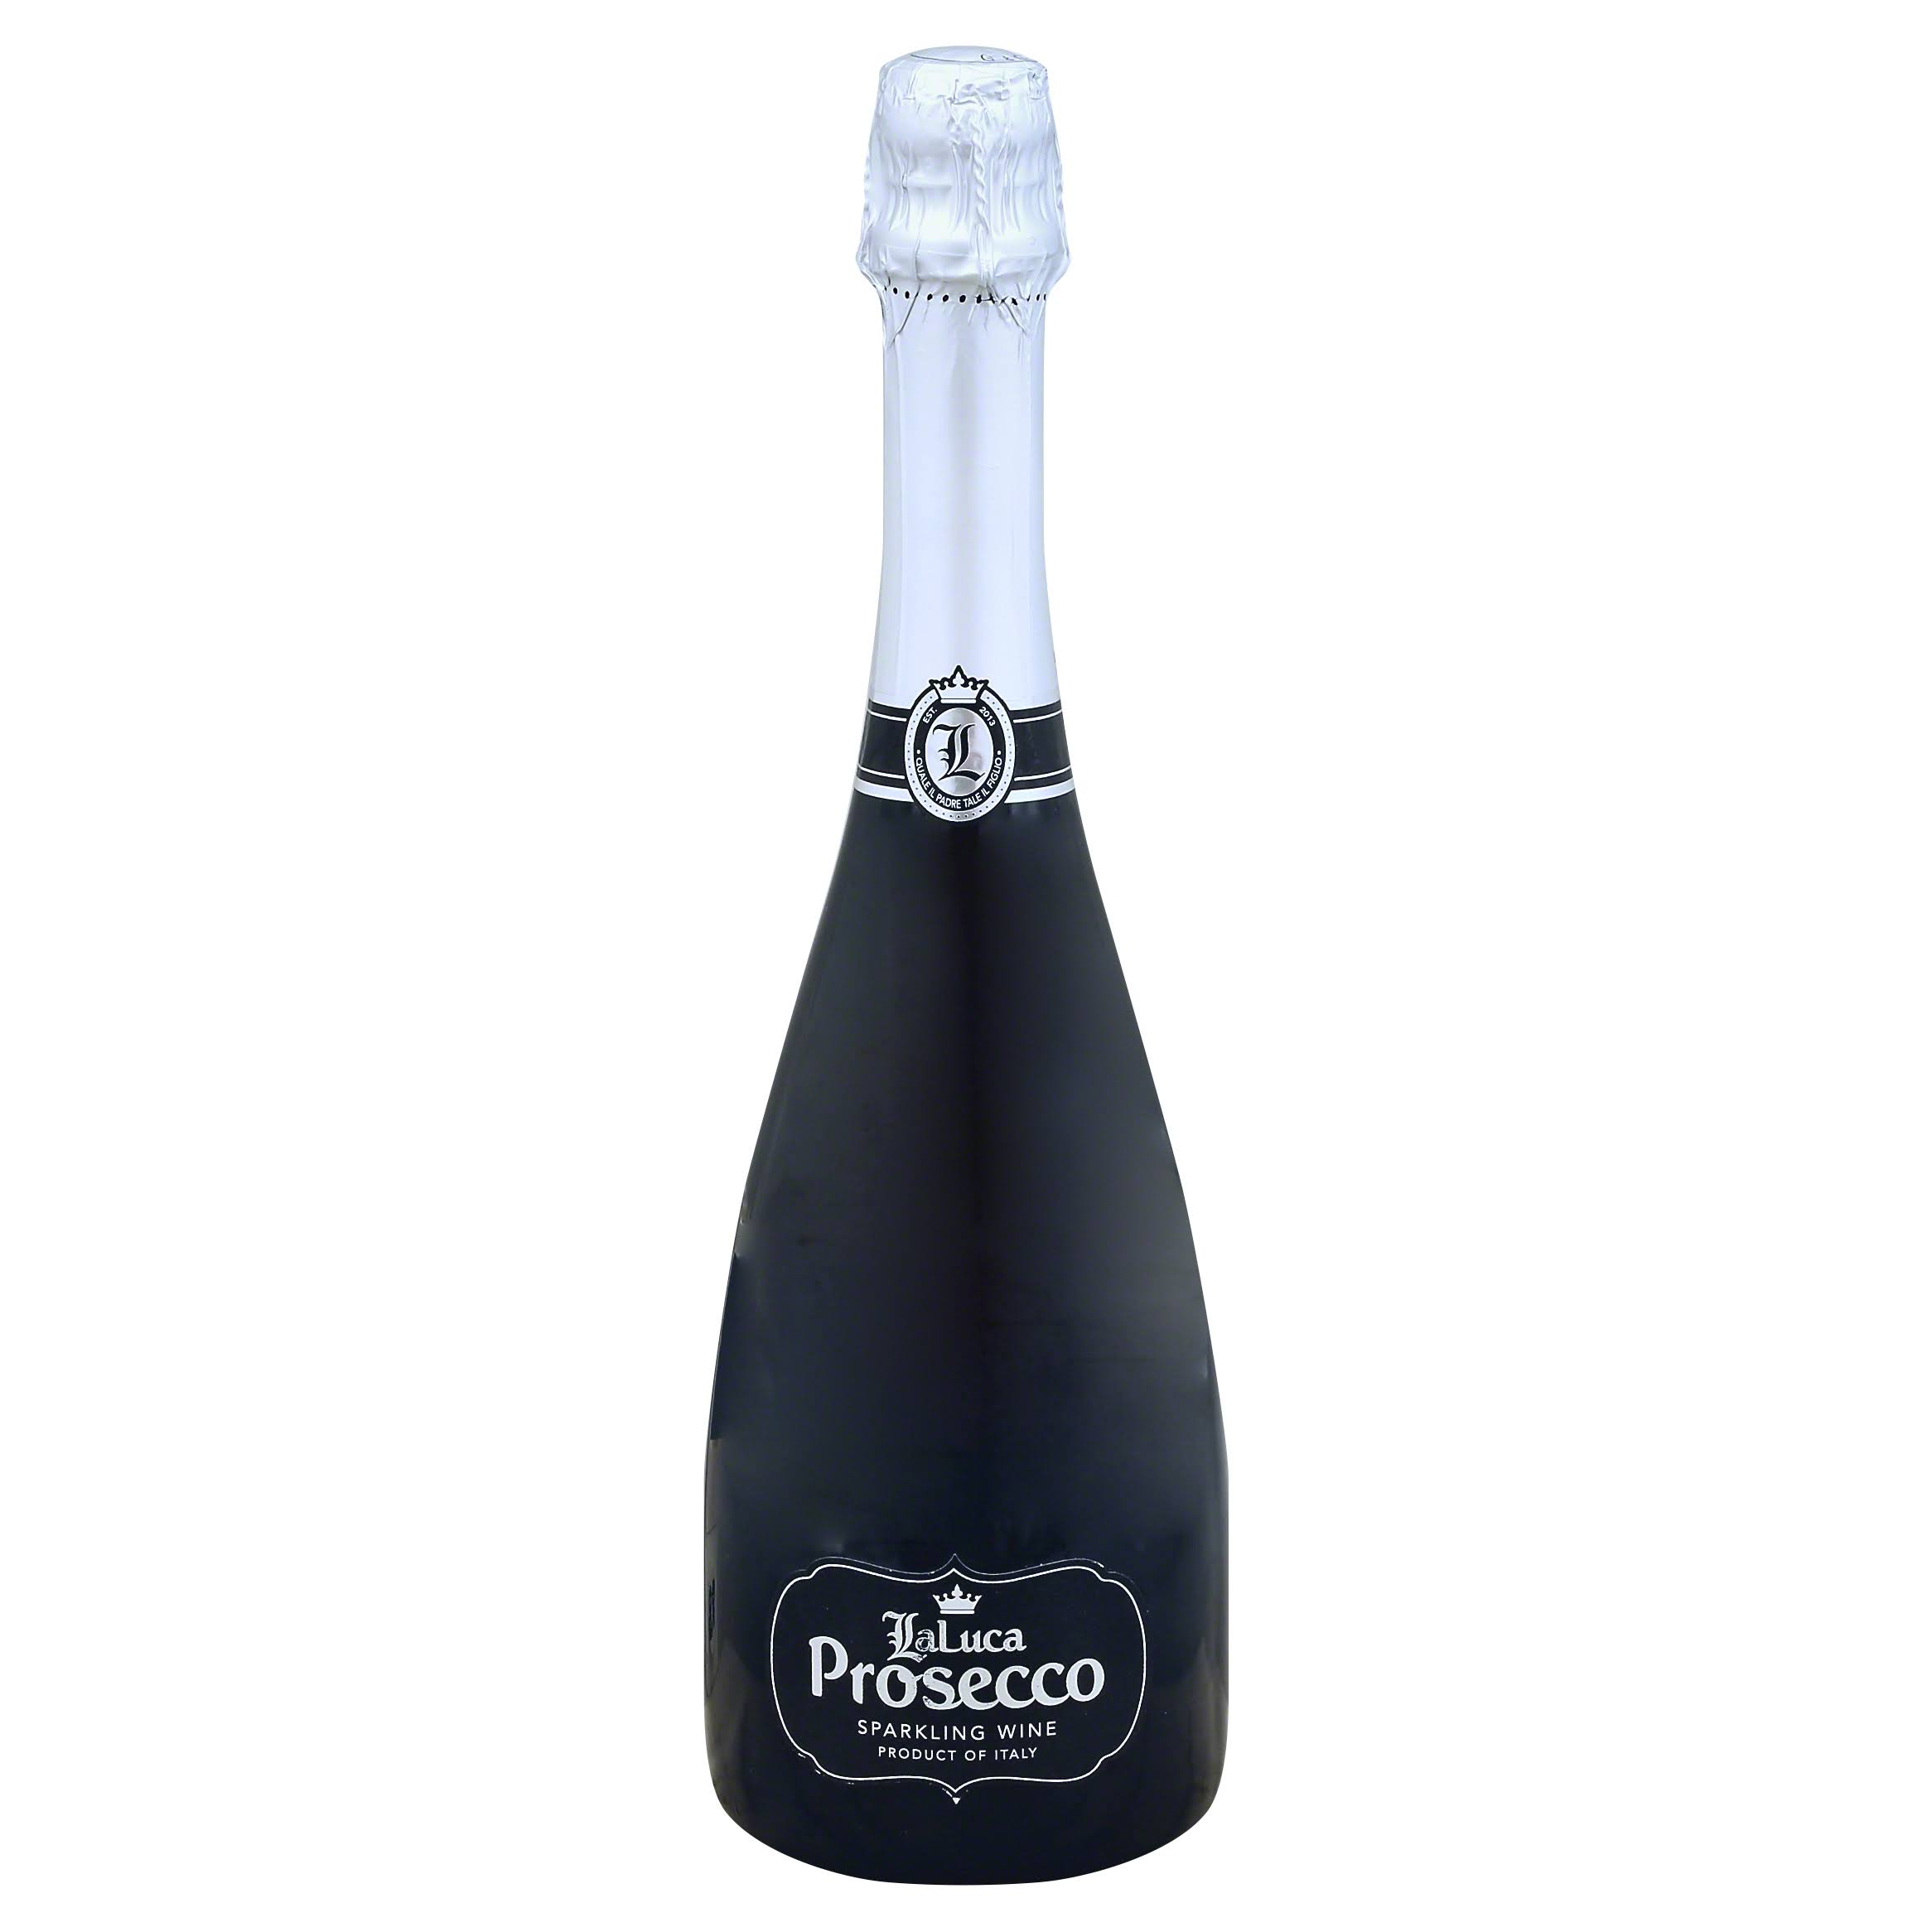 Laluca Prosecco, Veneto (Vintage Varies) - 750 ml bottle